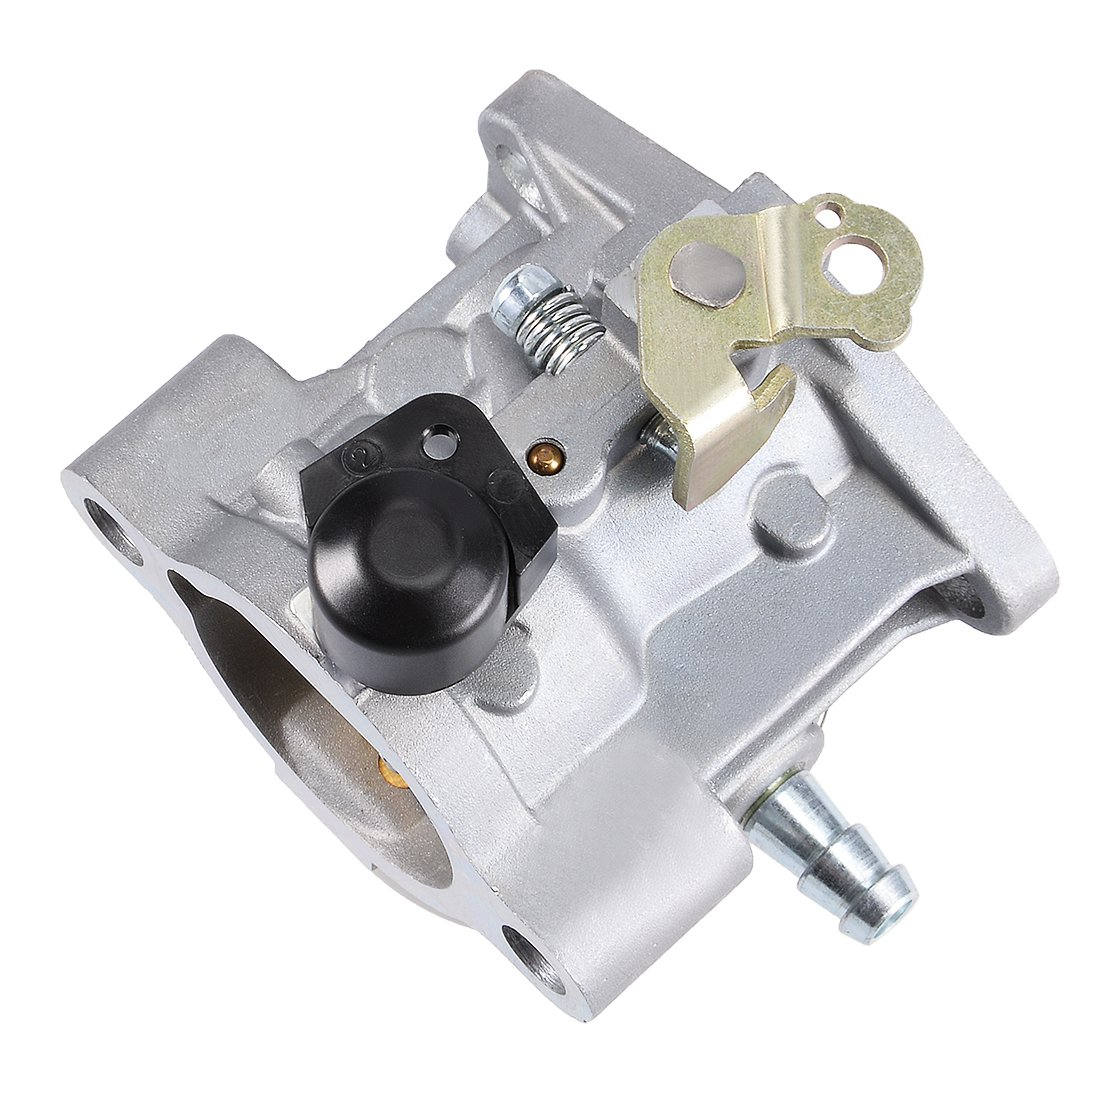 uxcell/® 590399 Carburetor Carb for Briggs /& Stratton 796077 Lawn Mower Engine with Gasket Fuel Line